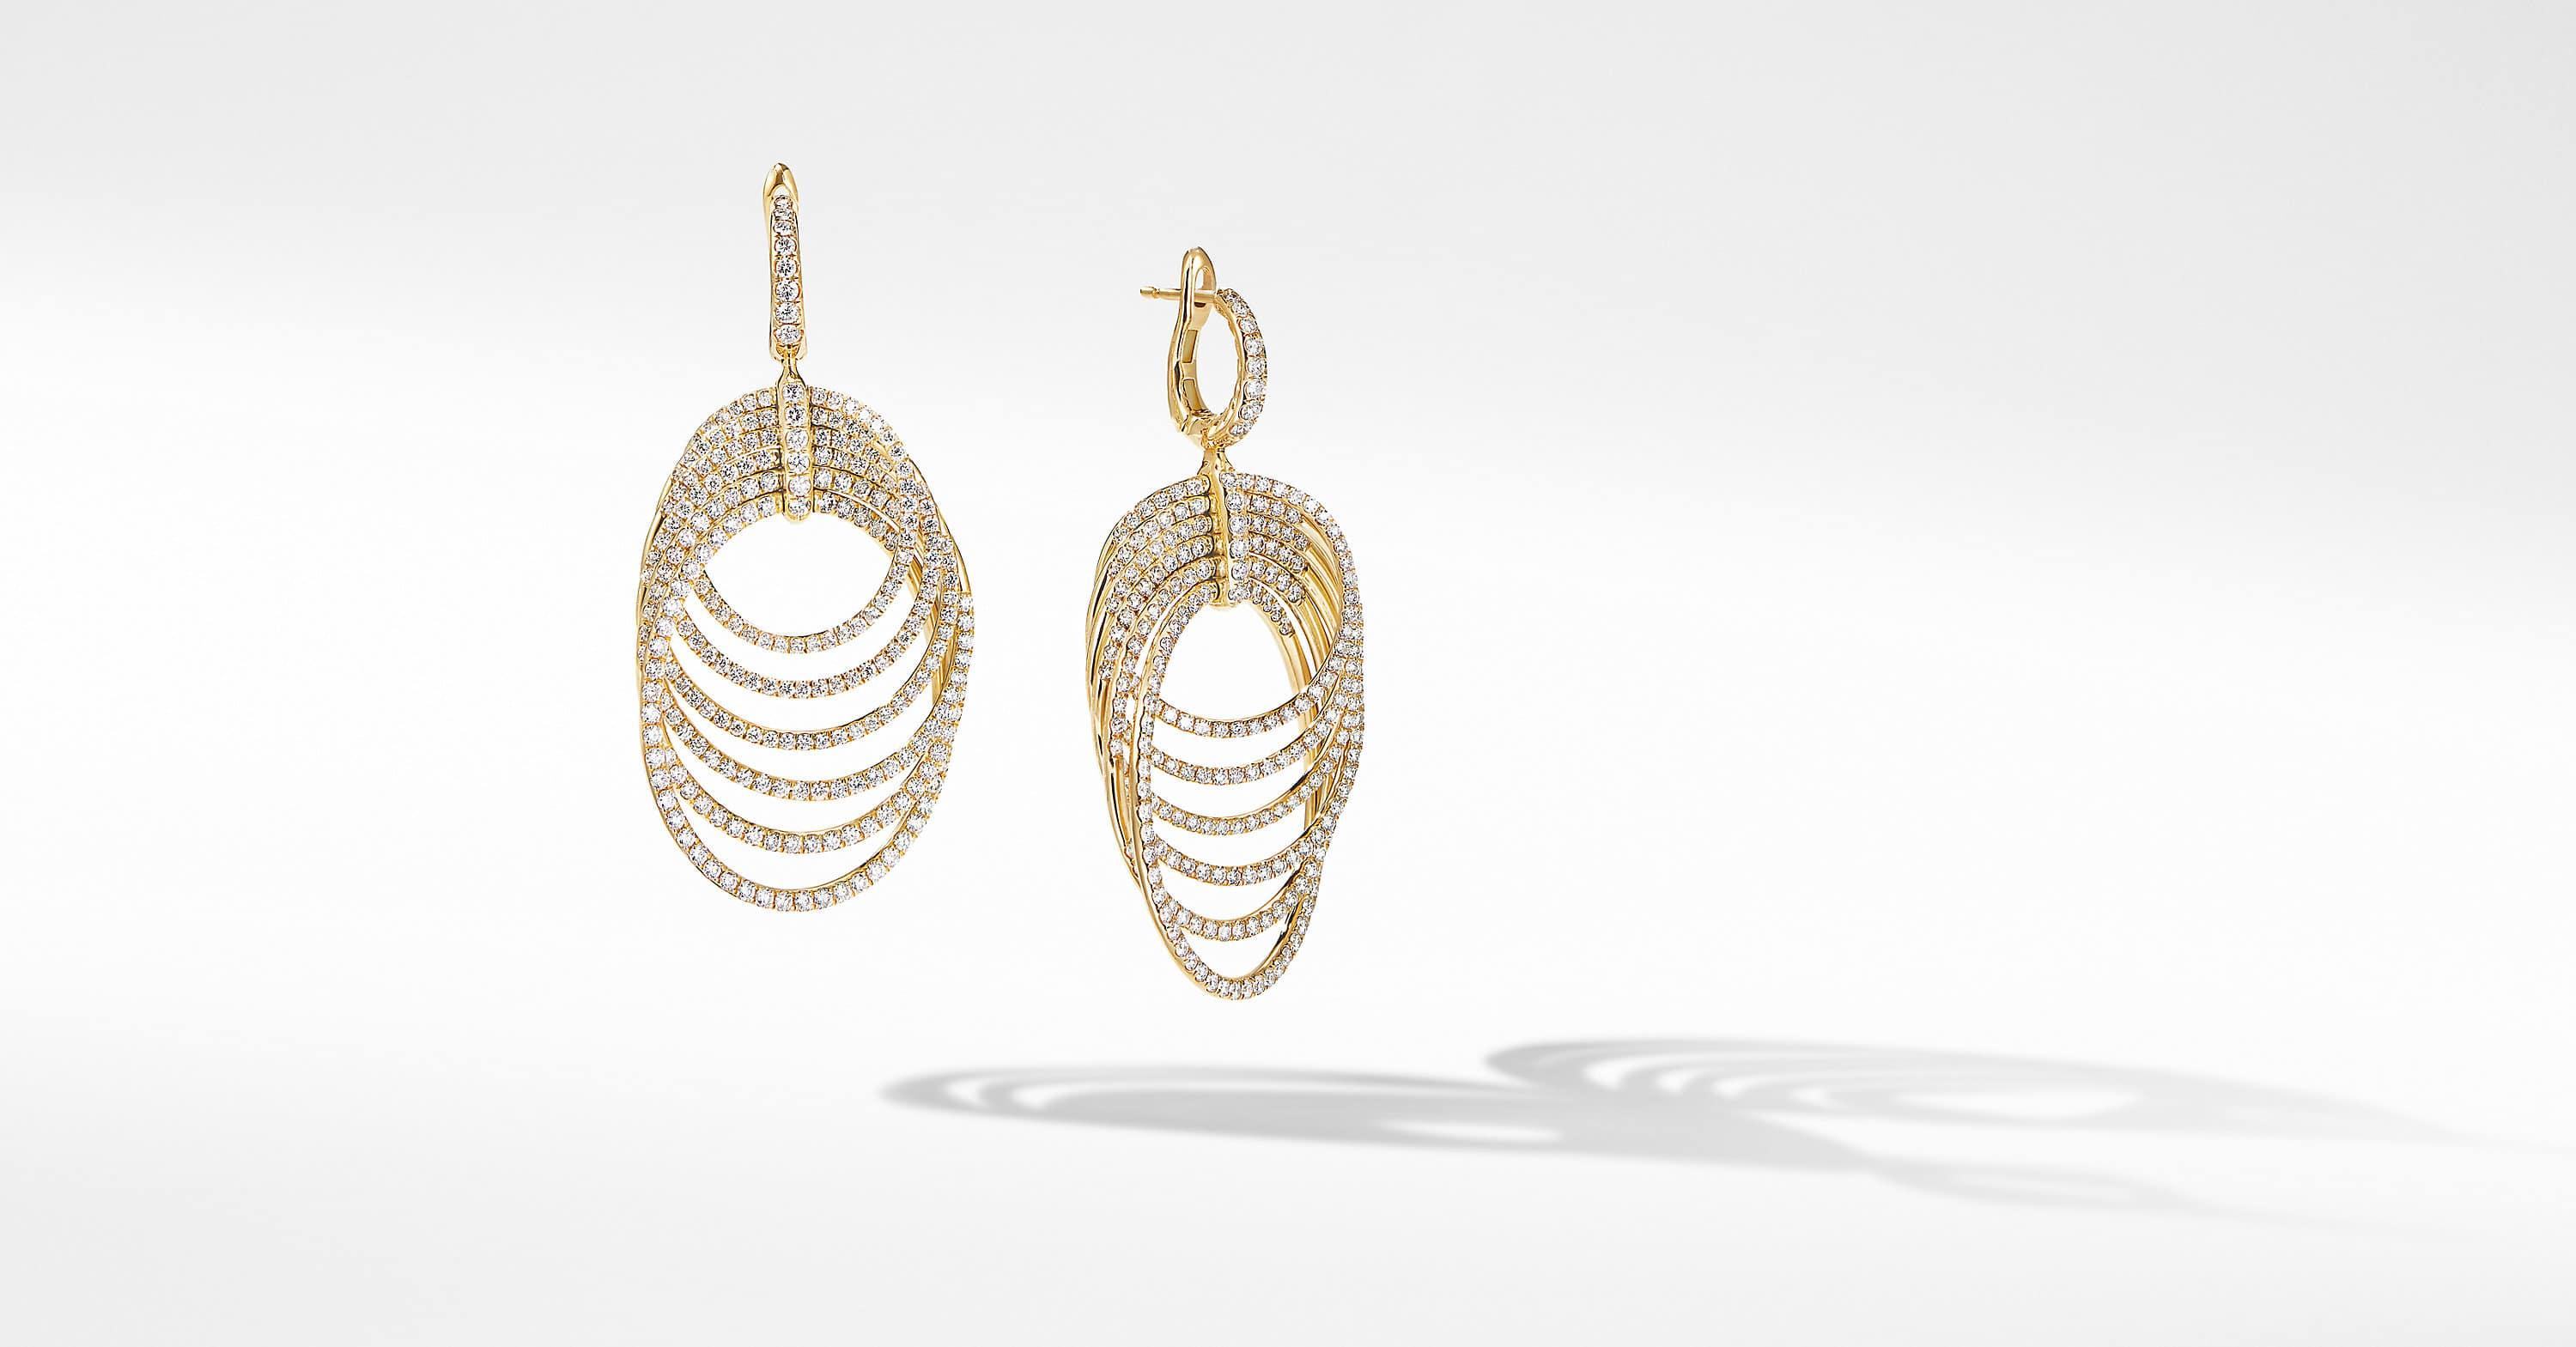 DY Origami Drop Earrings in 18K Yellow Gold with Full Pavé